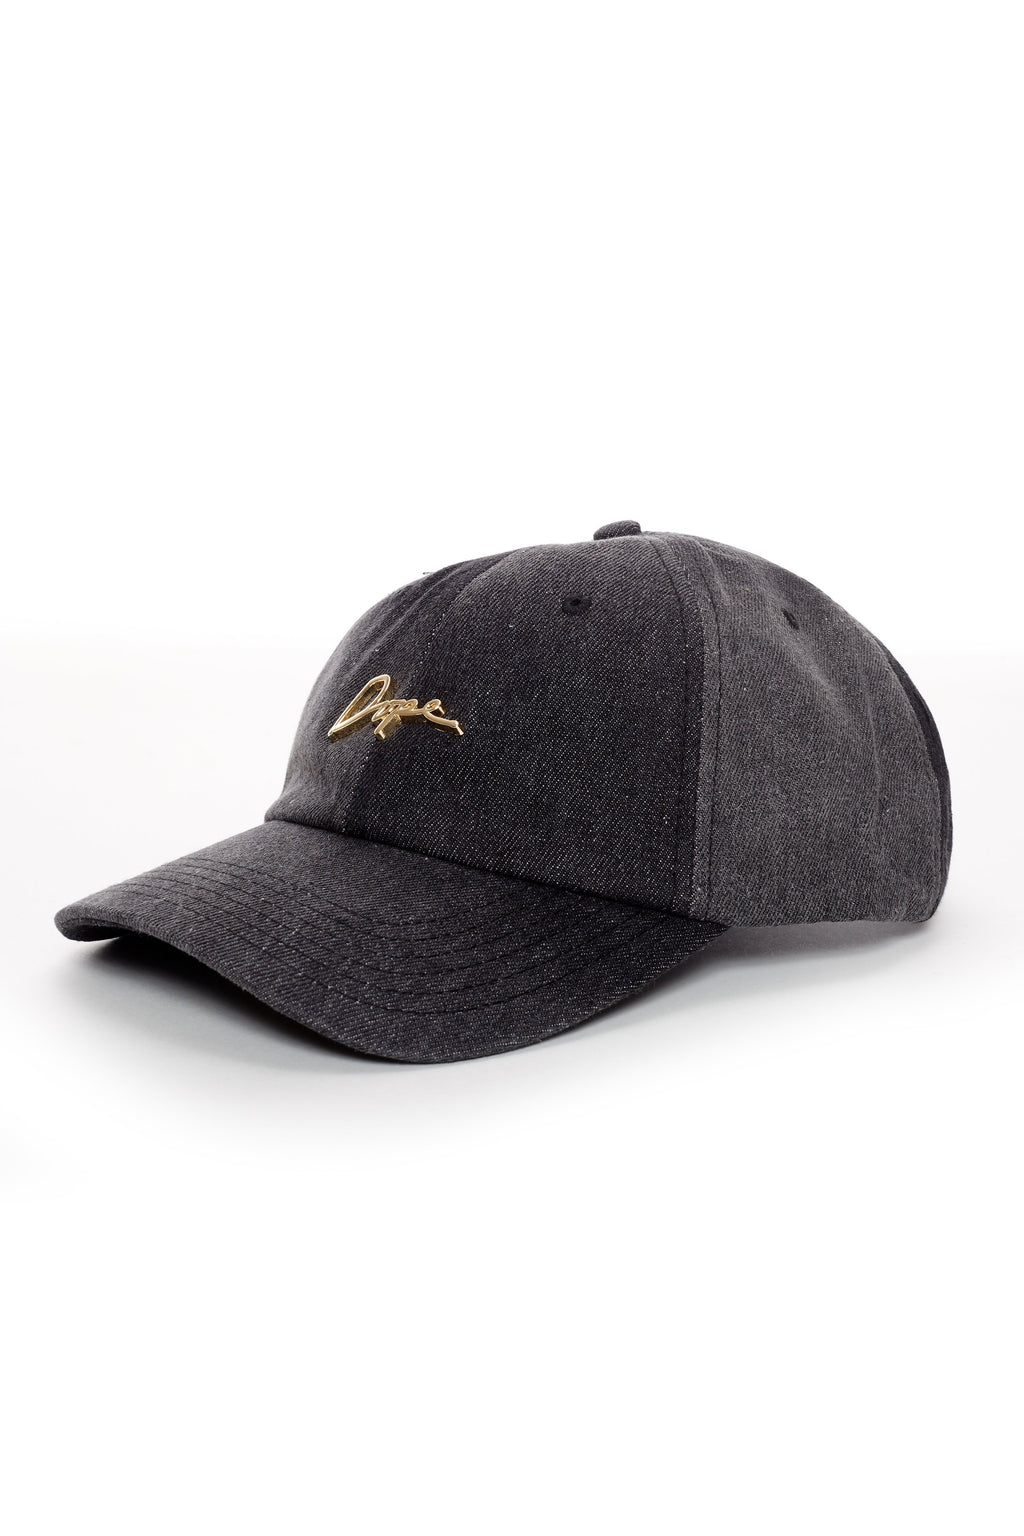 24K Script Denim Dad Hat